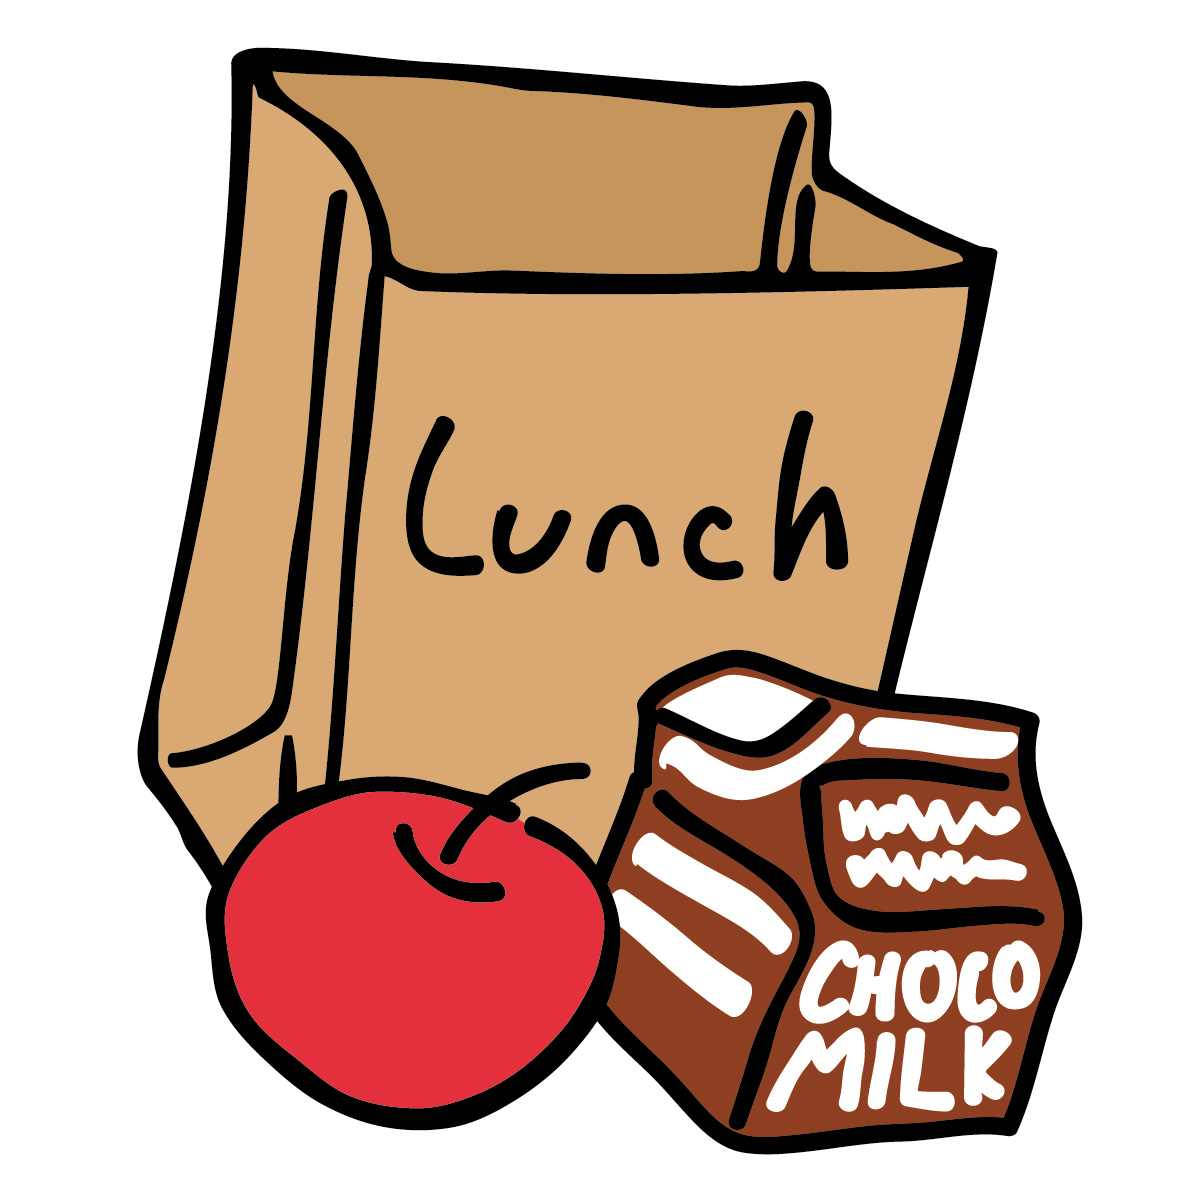 1200x1200 Lunch To Go Clipart Amp Lunch To Go Clip Art Images